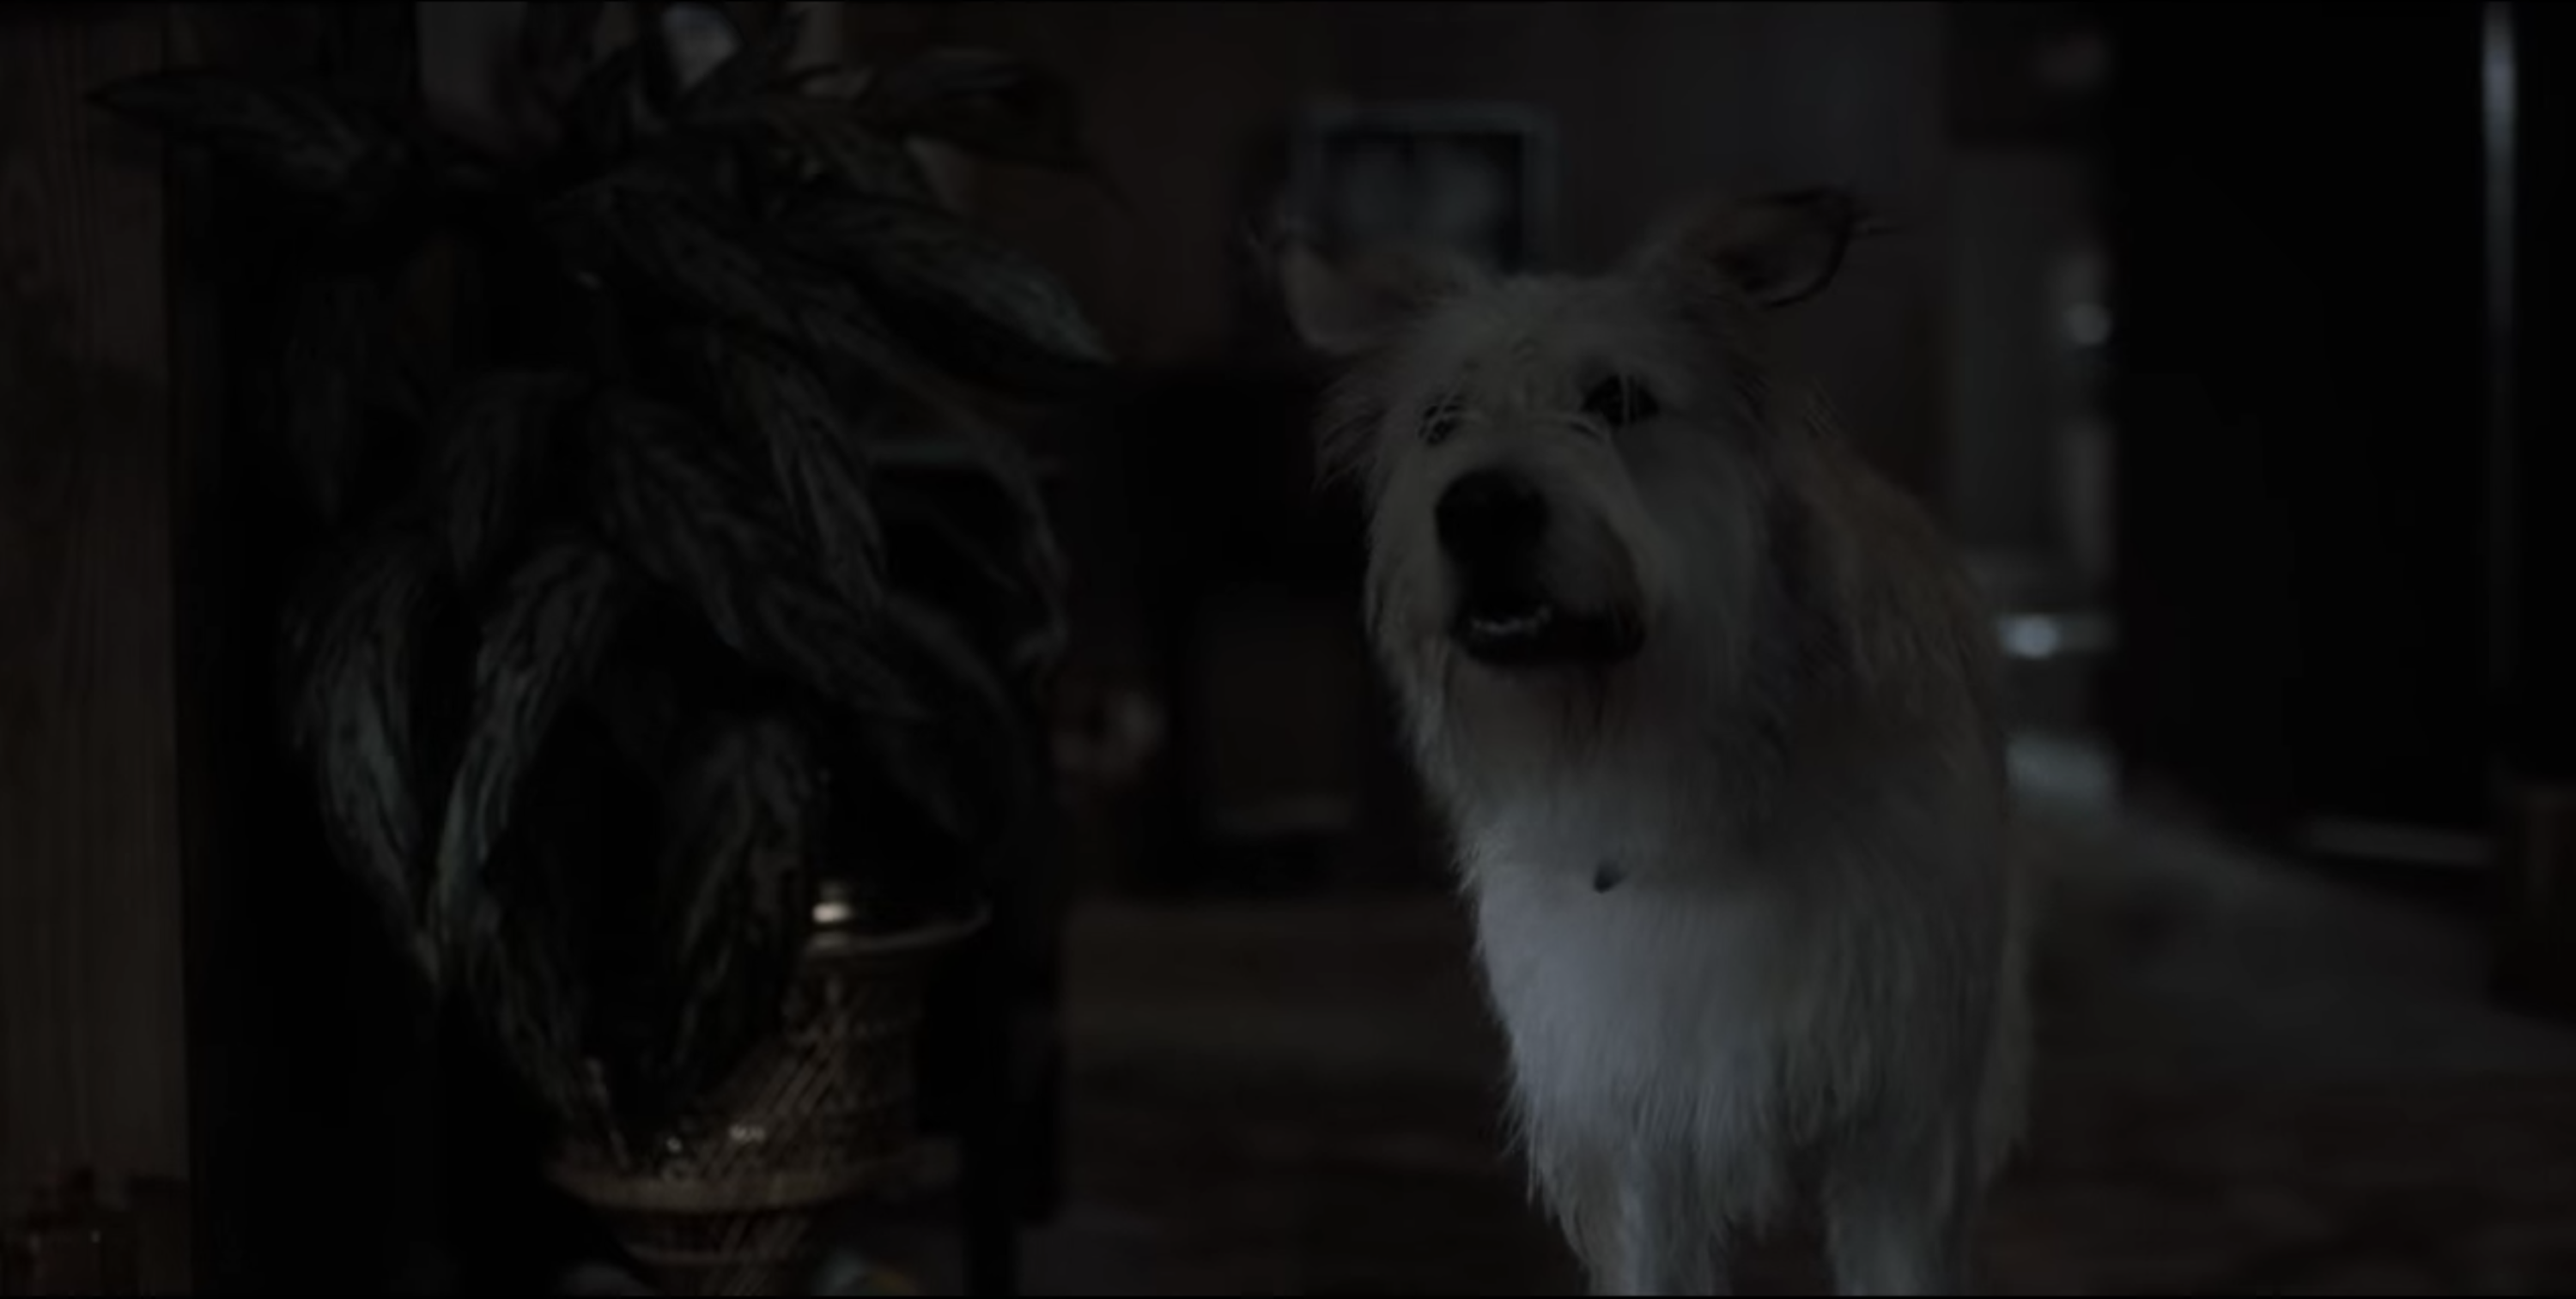 The Byers' dog is pictured in this screengrab from the pilot episode of Stranger Things